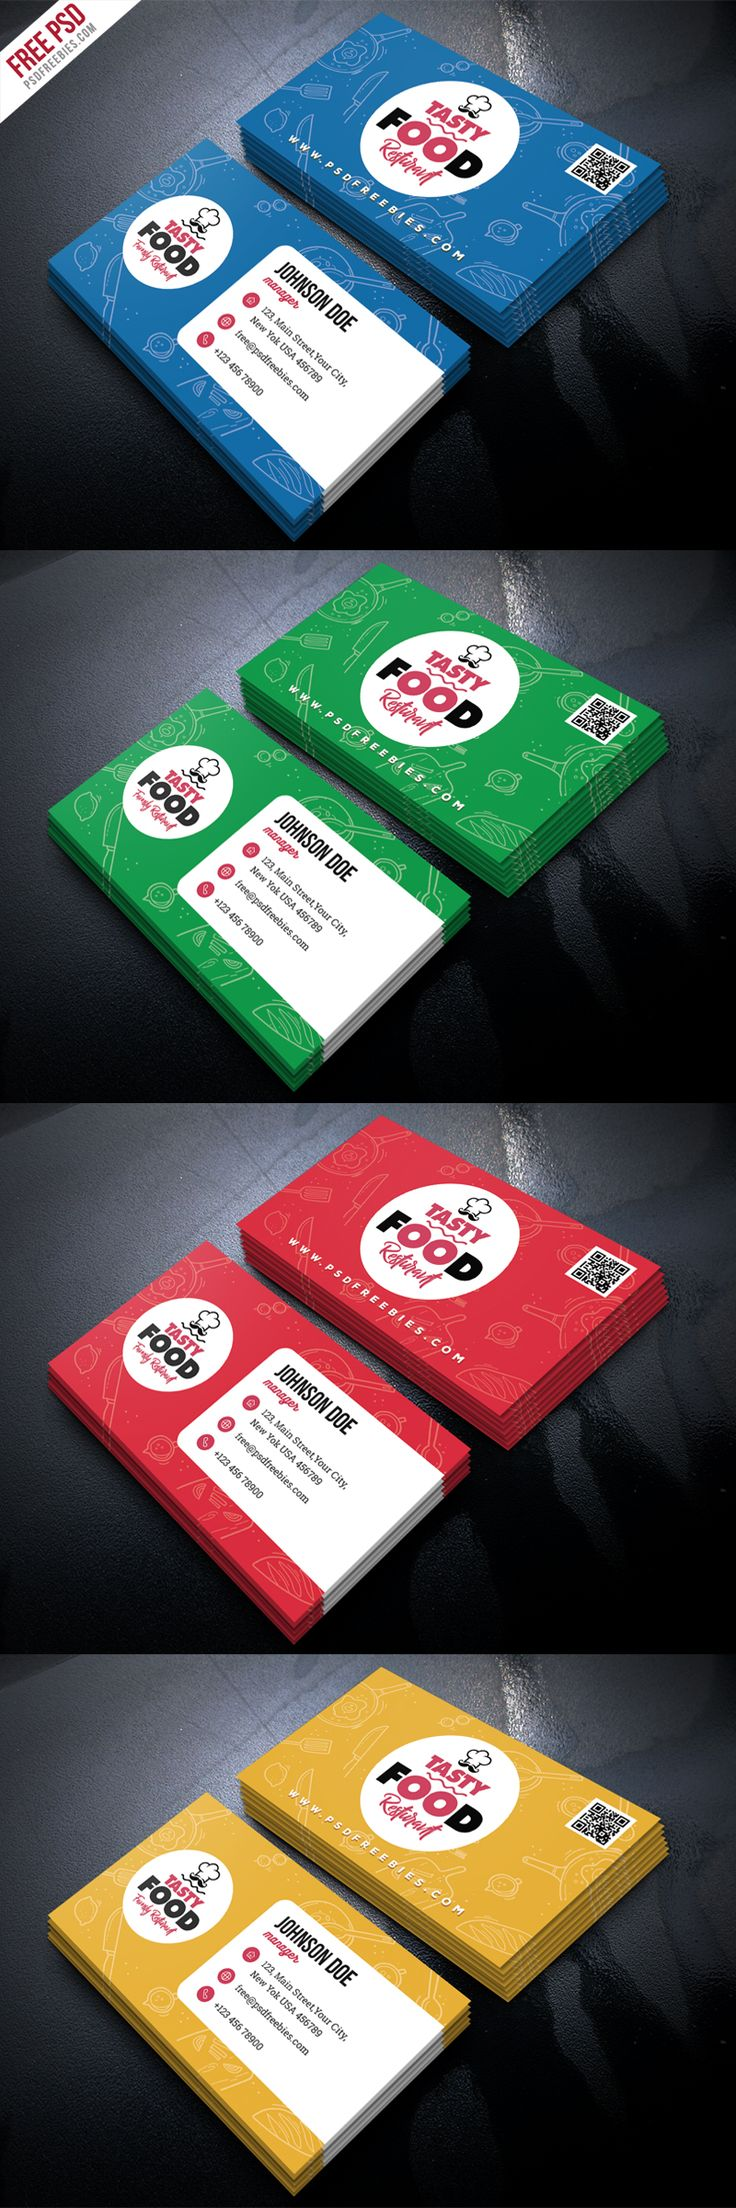 Download Restaurant Business Card Free PSD Bundle. This Restaurant Business Card Free PSD Bundle is perfect for any kind of food industry like a restaurant, bar, hotel, cafe shop etc. This Restaurant Business Card is designed and created in adobe Photoshop. This Freebie Included with 4 different color options.